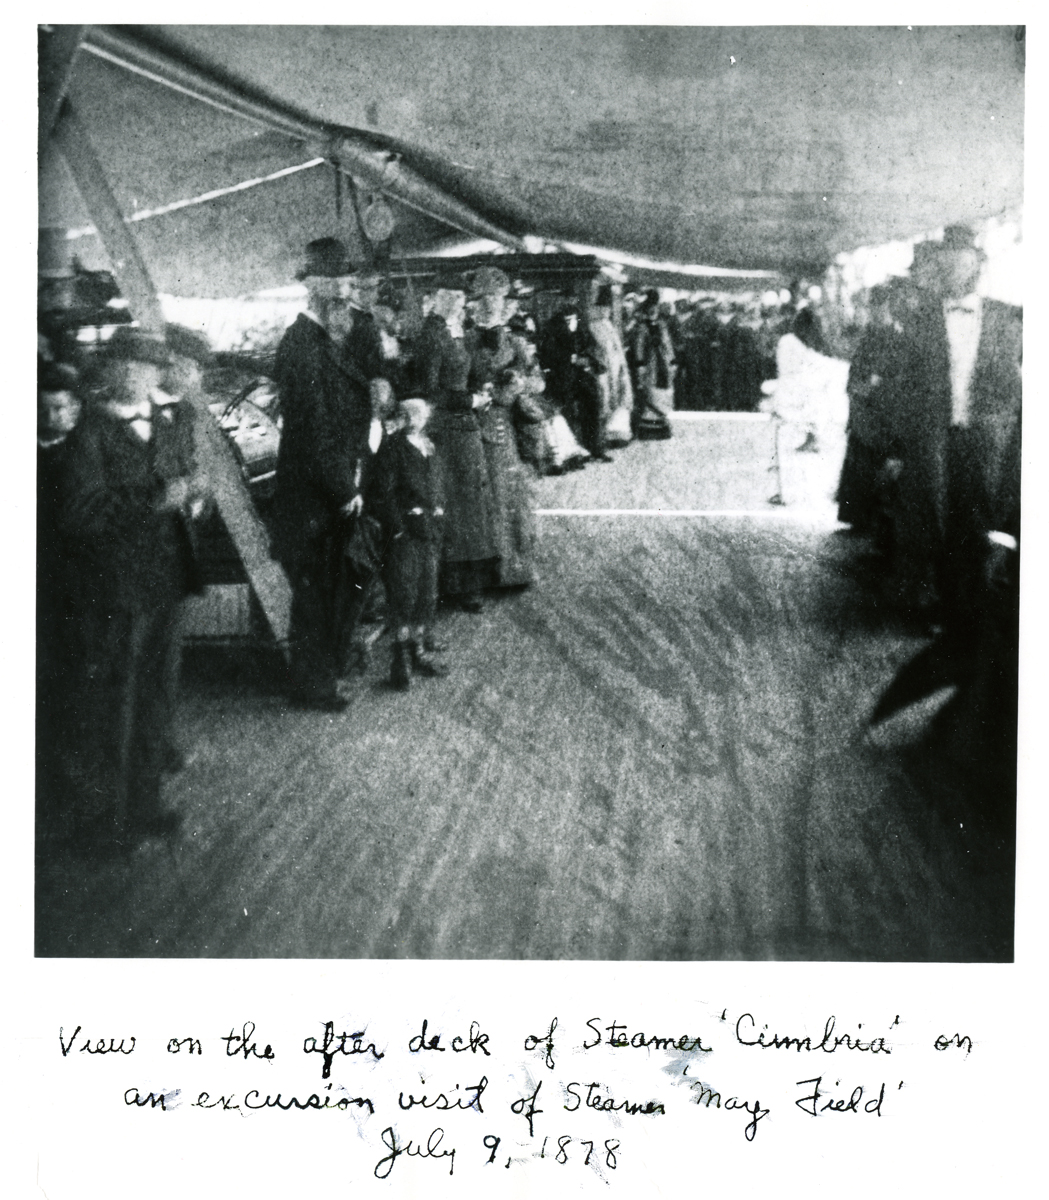 Party on the Deck of the S.S. Cimbria at Southwest Harbor, Maine - 1878